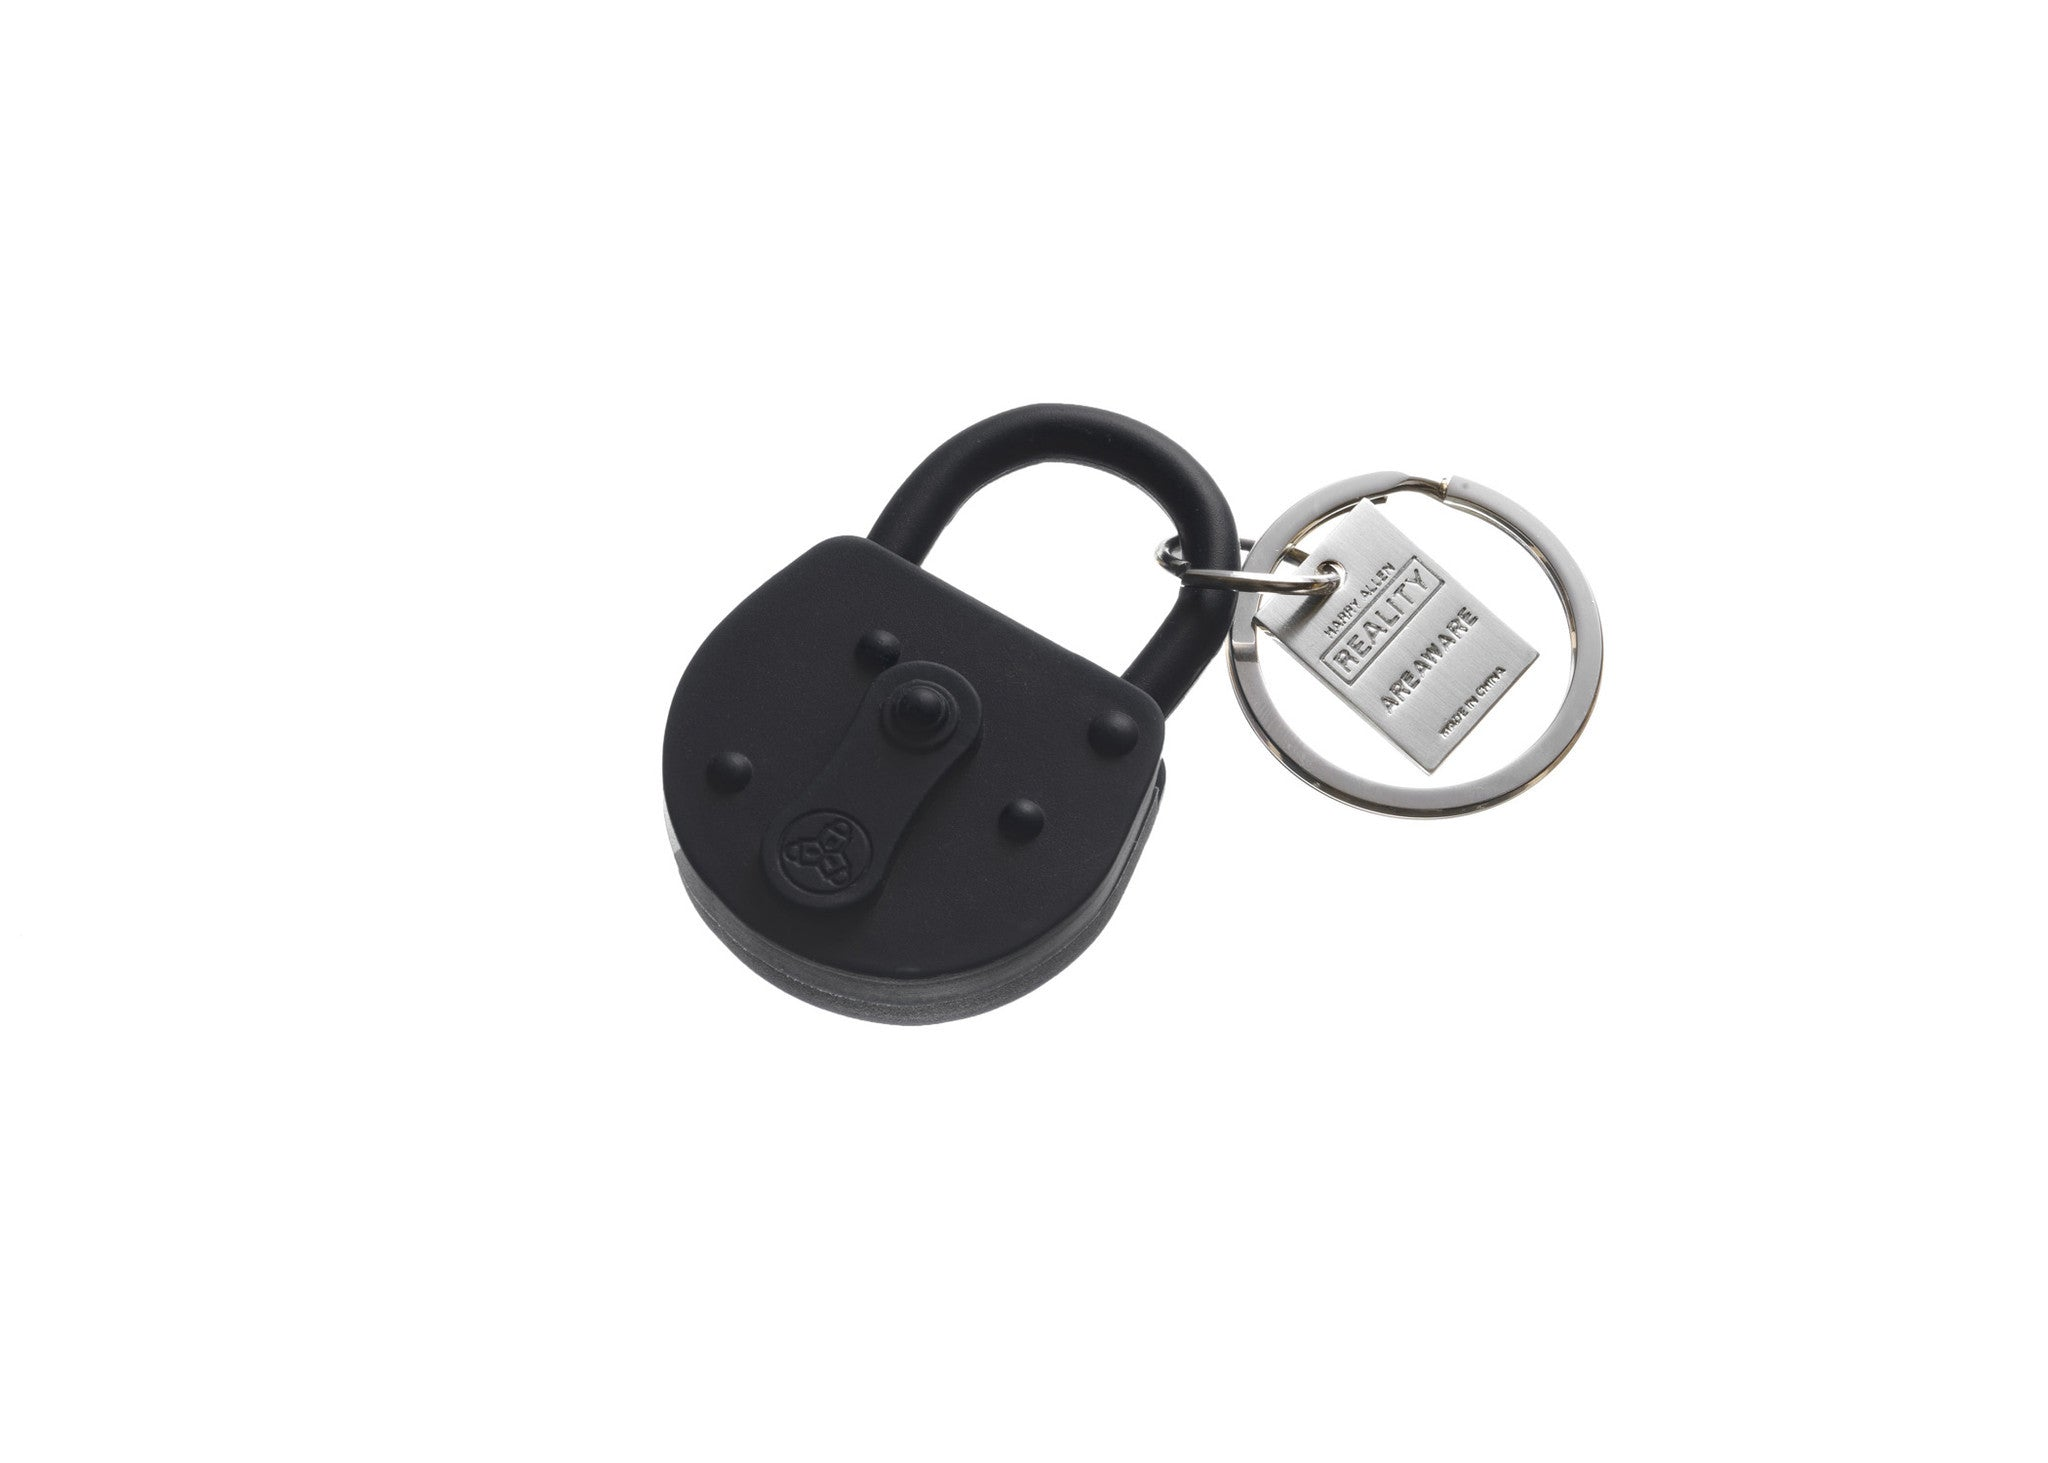 Apexia Black Leather Stainless Steel Key Chain with Oval Silver Key Ring Clip 3.5 x 1